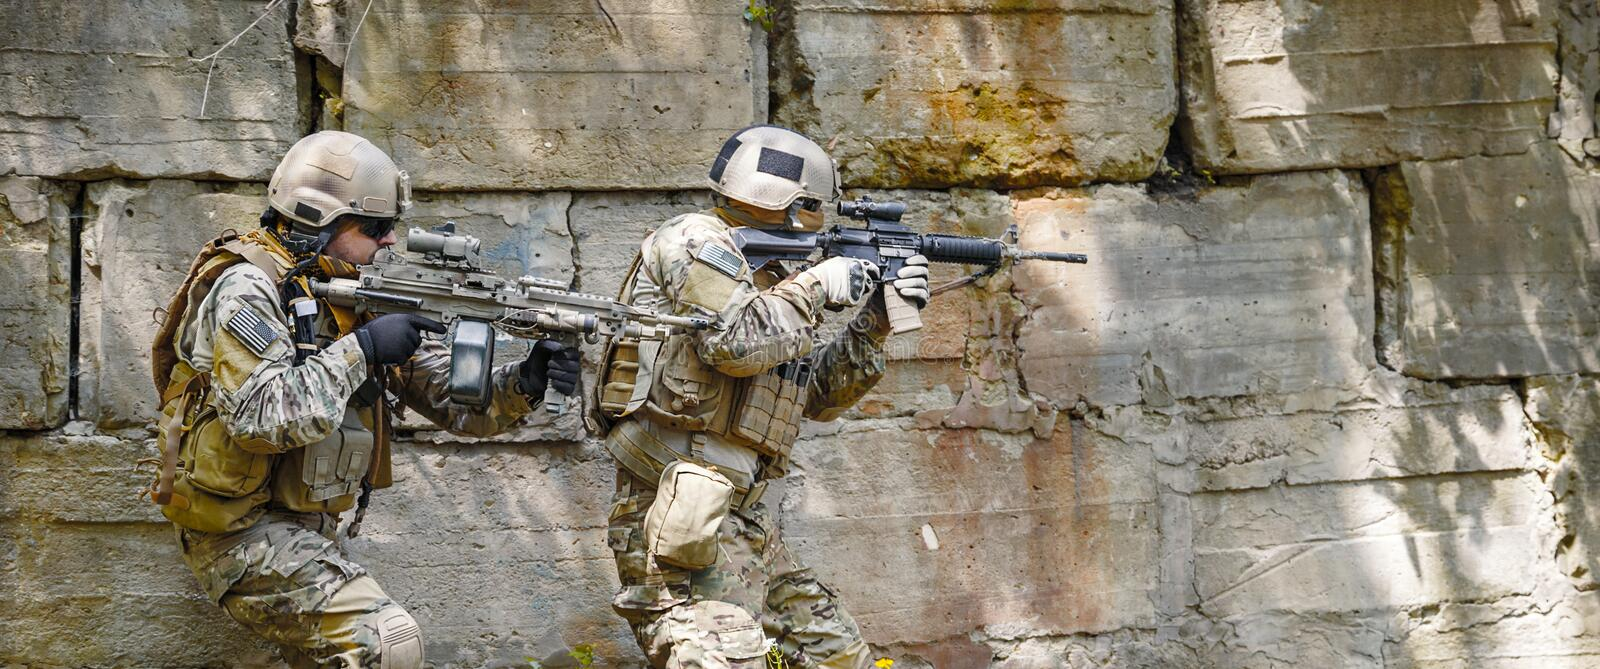 Green Berets soldiers in action royalty free stock photos